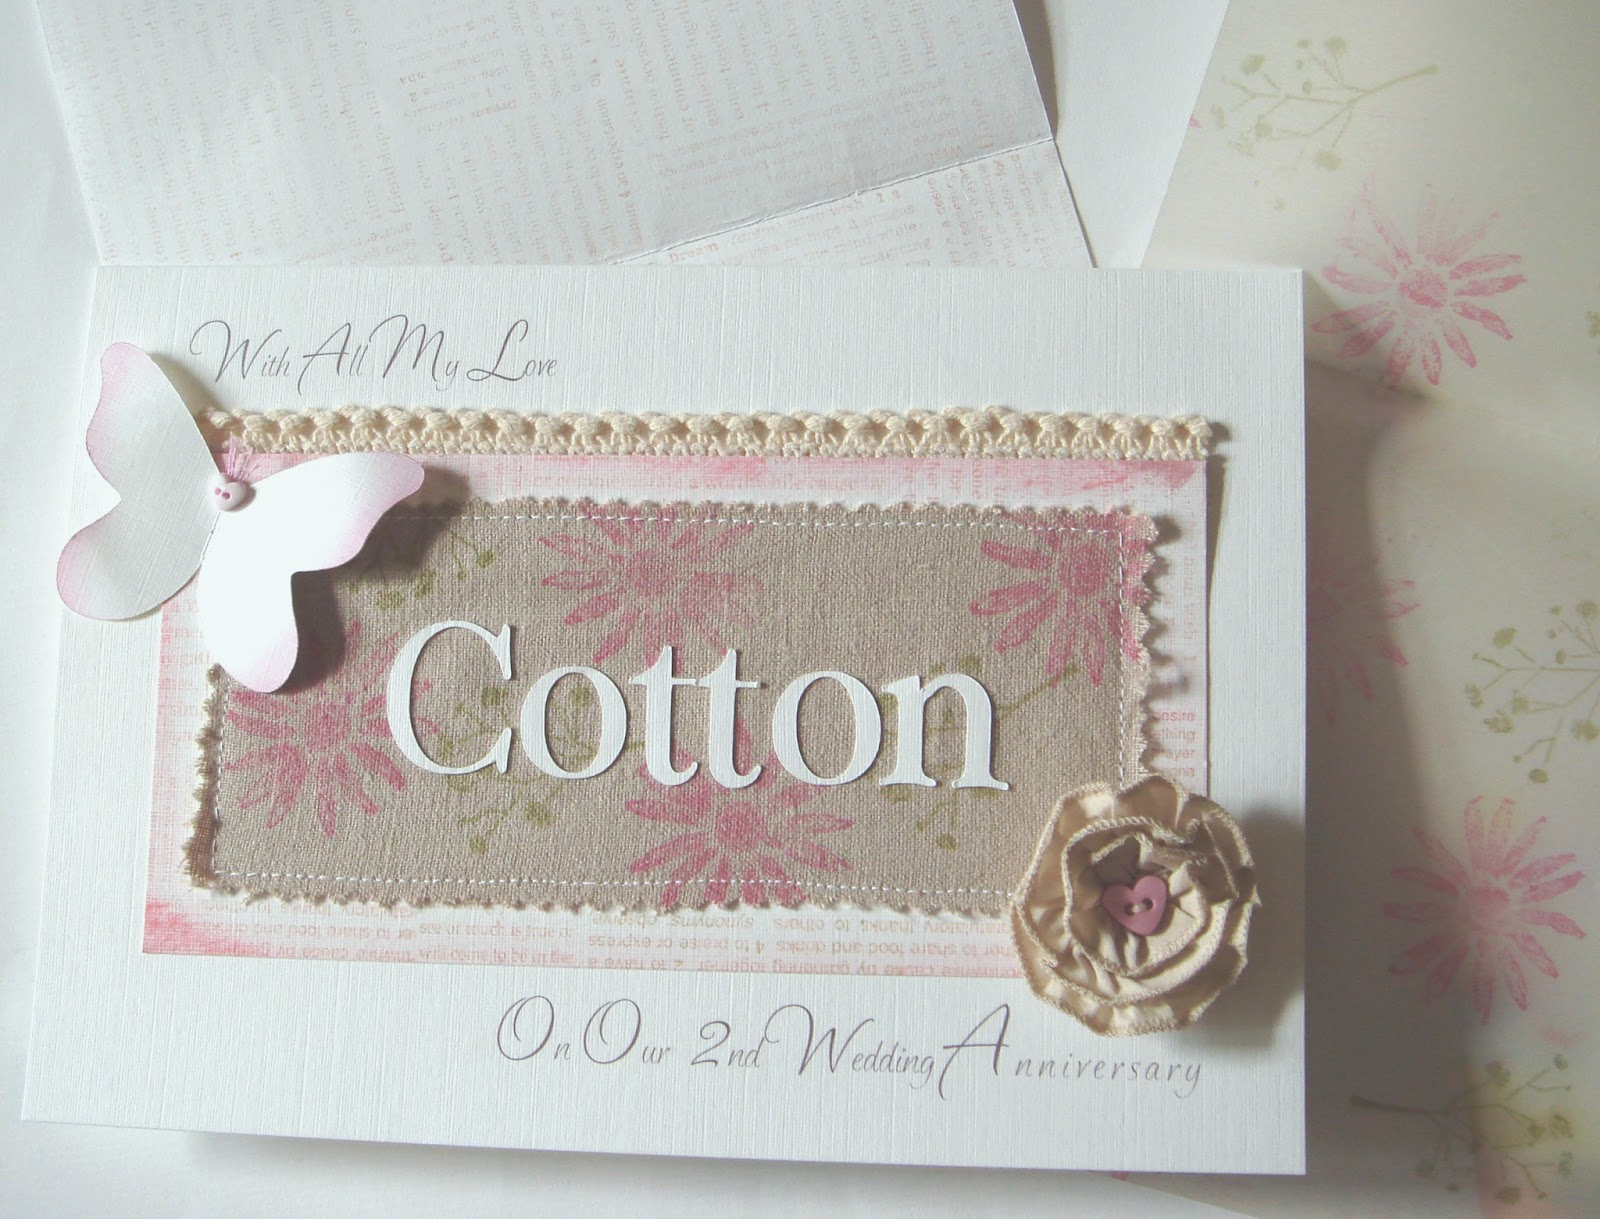 2nd Wedding Anniversary Ideas Cotton : ... cotton fabric and butterfly, the card was placed in the box with